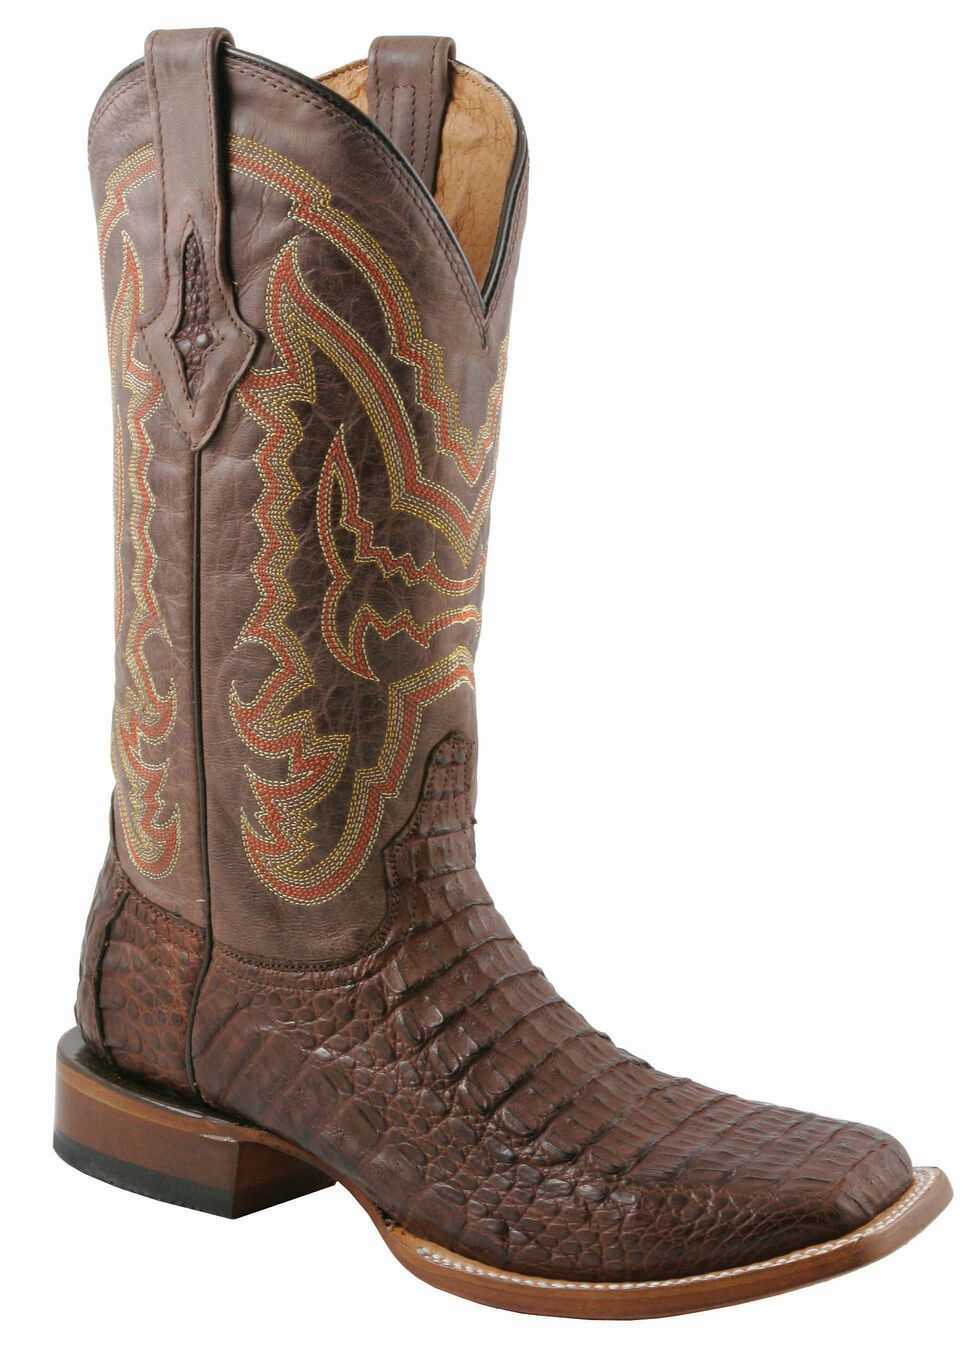 Lucchese Handmade 1883 Hornback Caiman Cowboy Boots - Square Toe, Cigar, hi-res